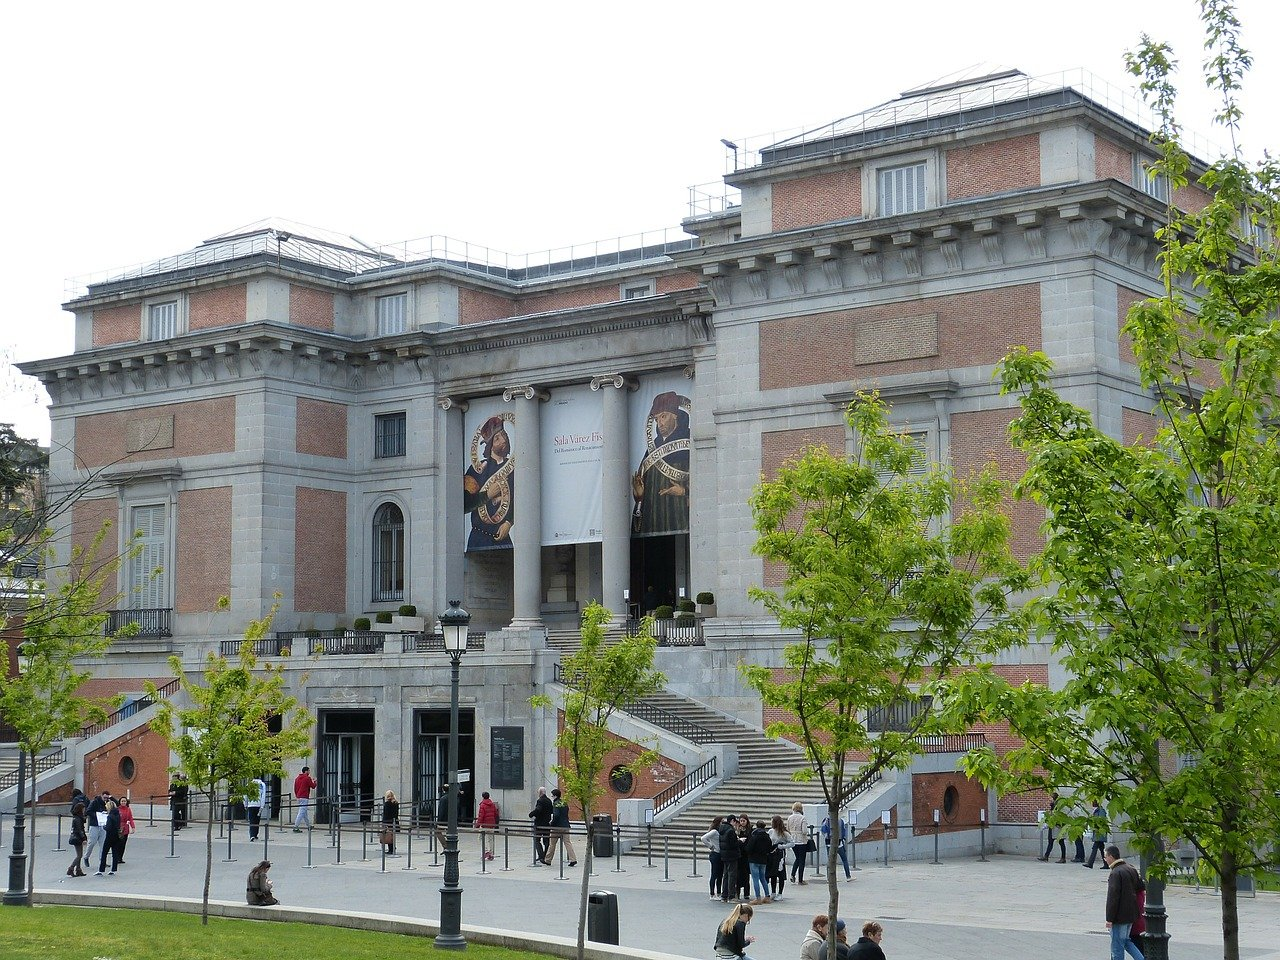 The Prado Museum is one of the best things to see in Madrid